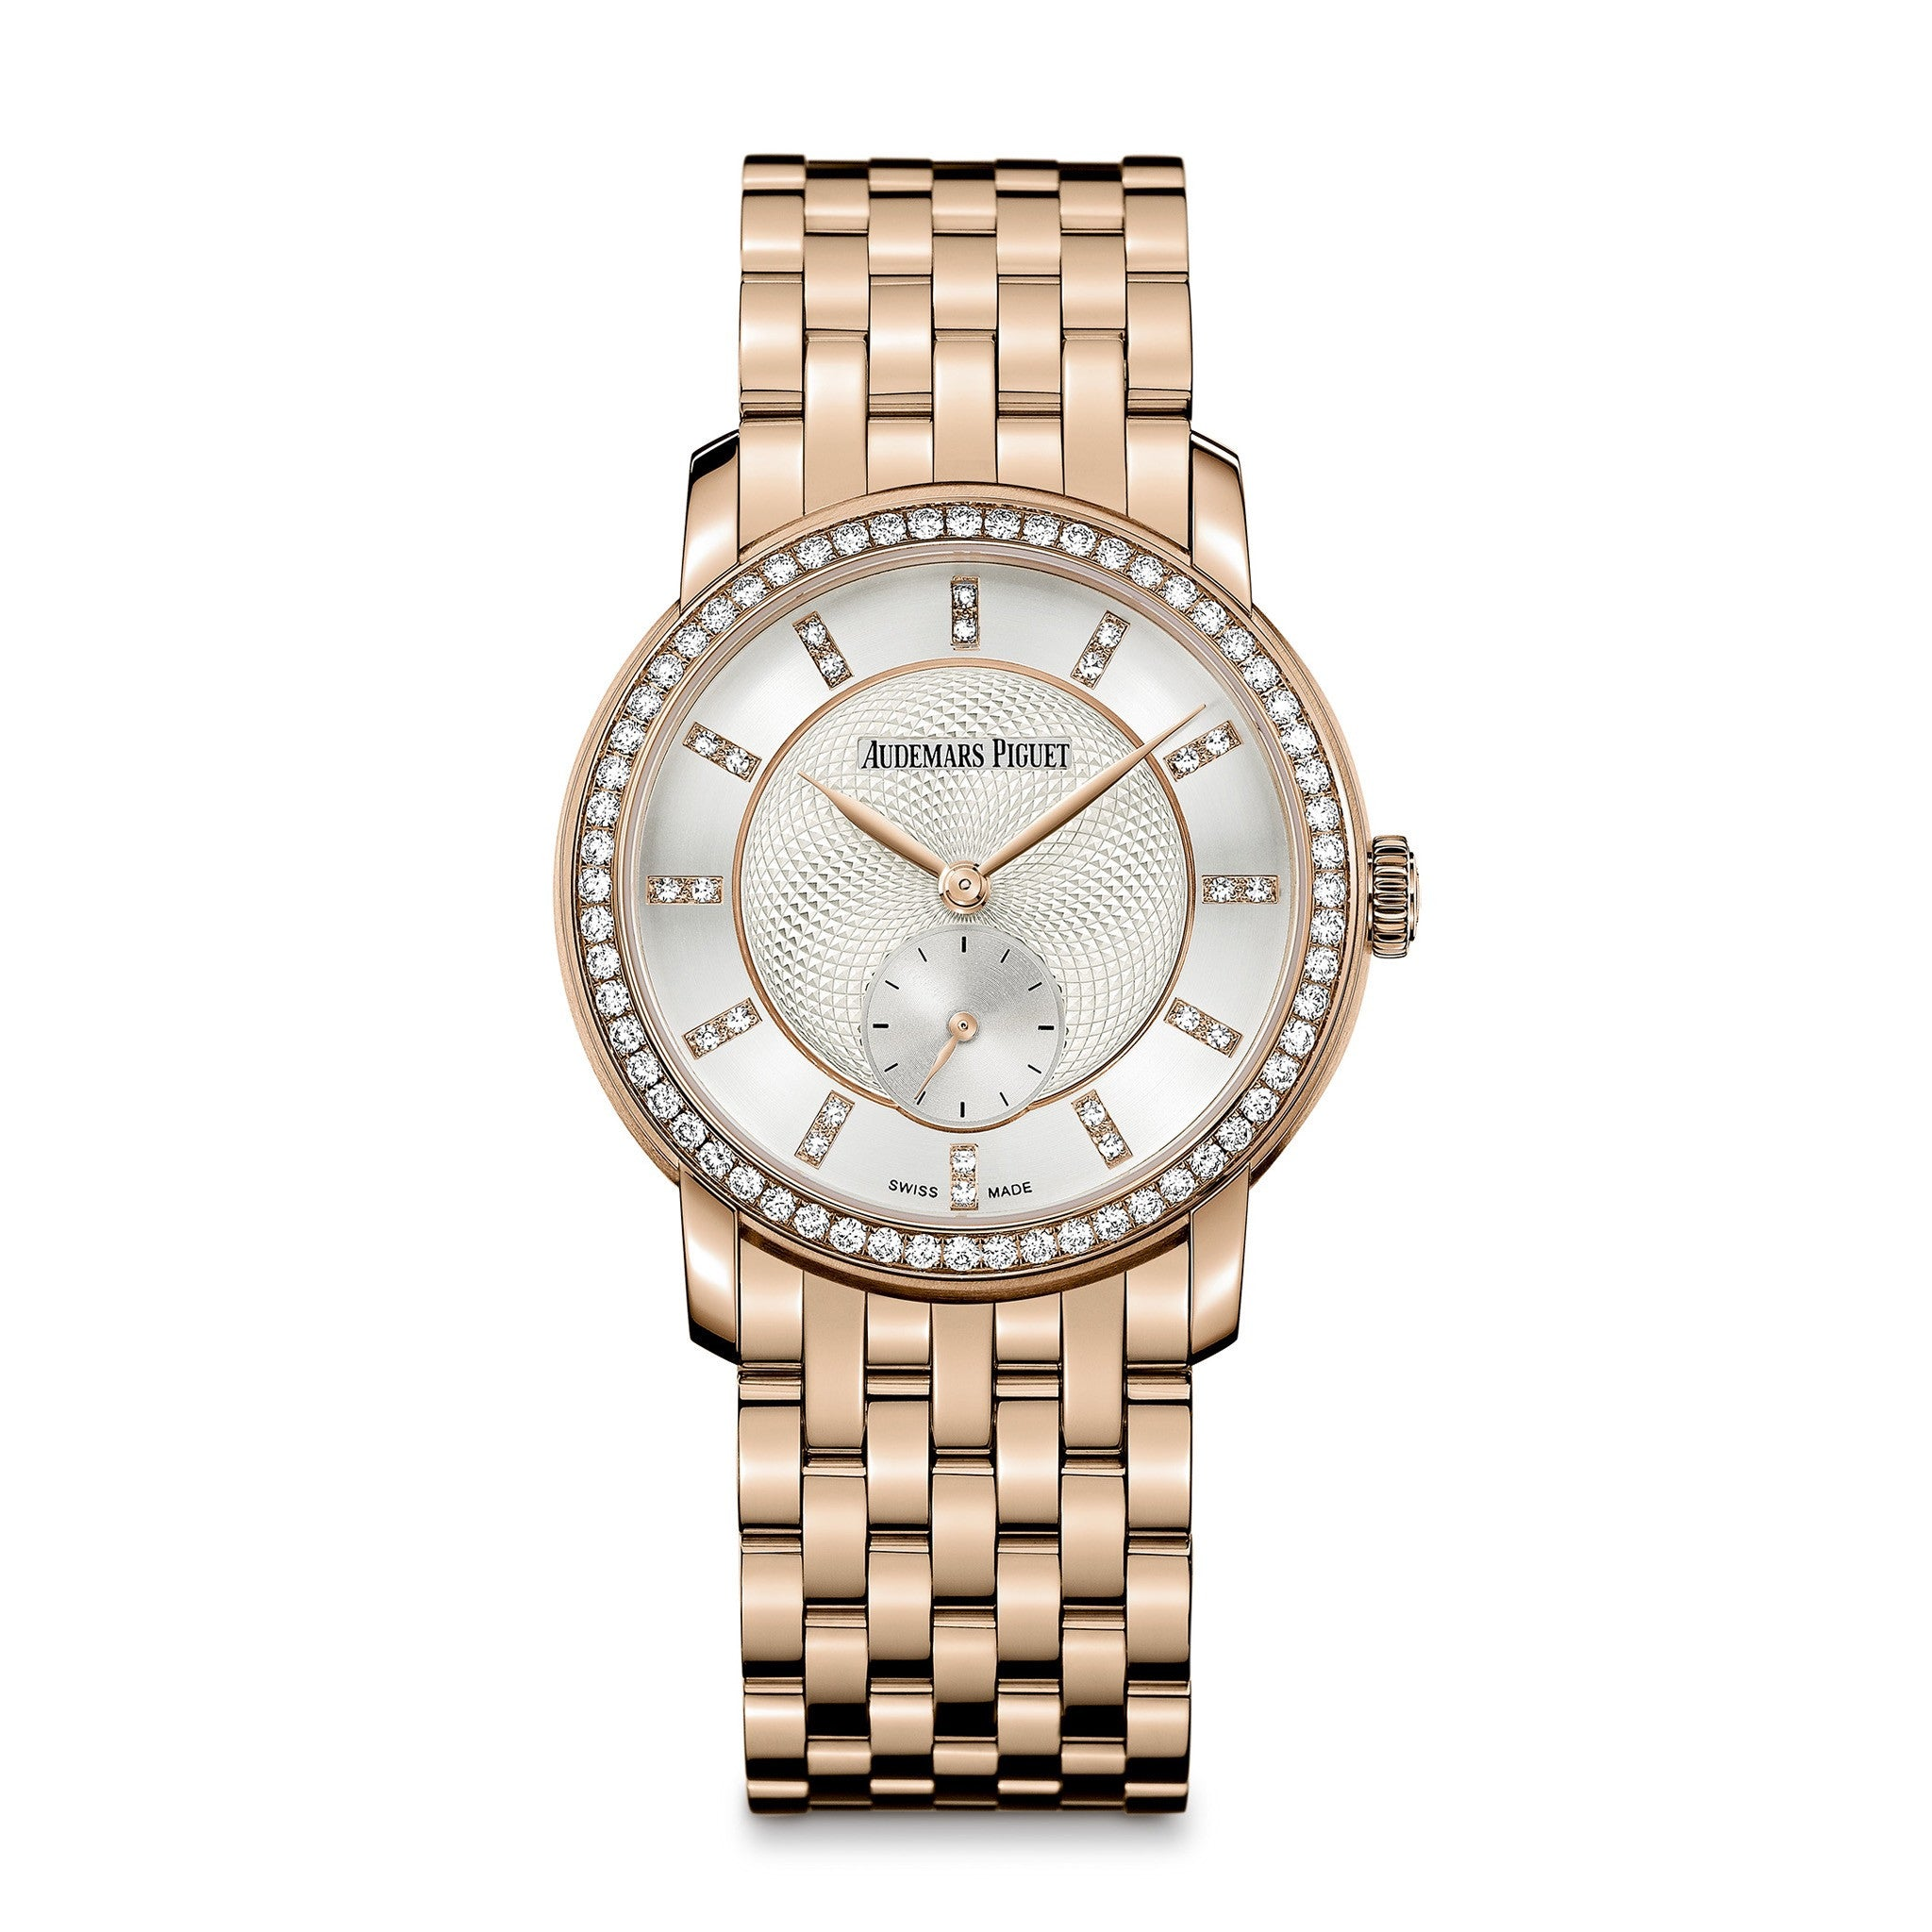 Jules Audemars Ladies Small Seconds 77251OR.ZZ.1270OR.01 - Audemars Piguet